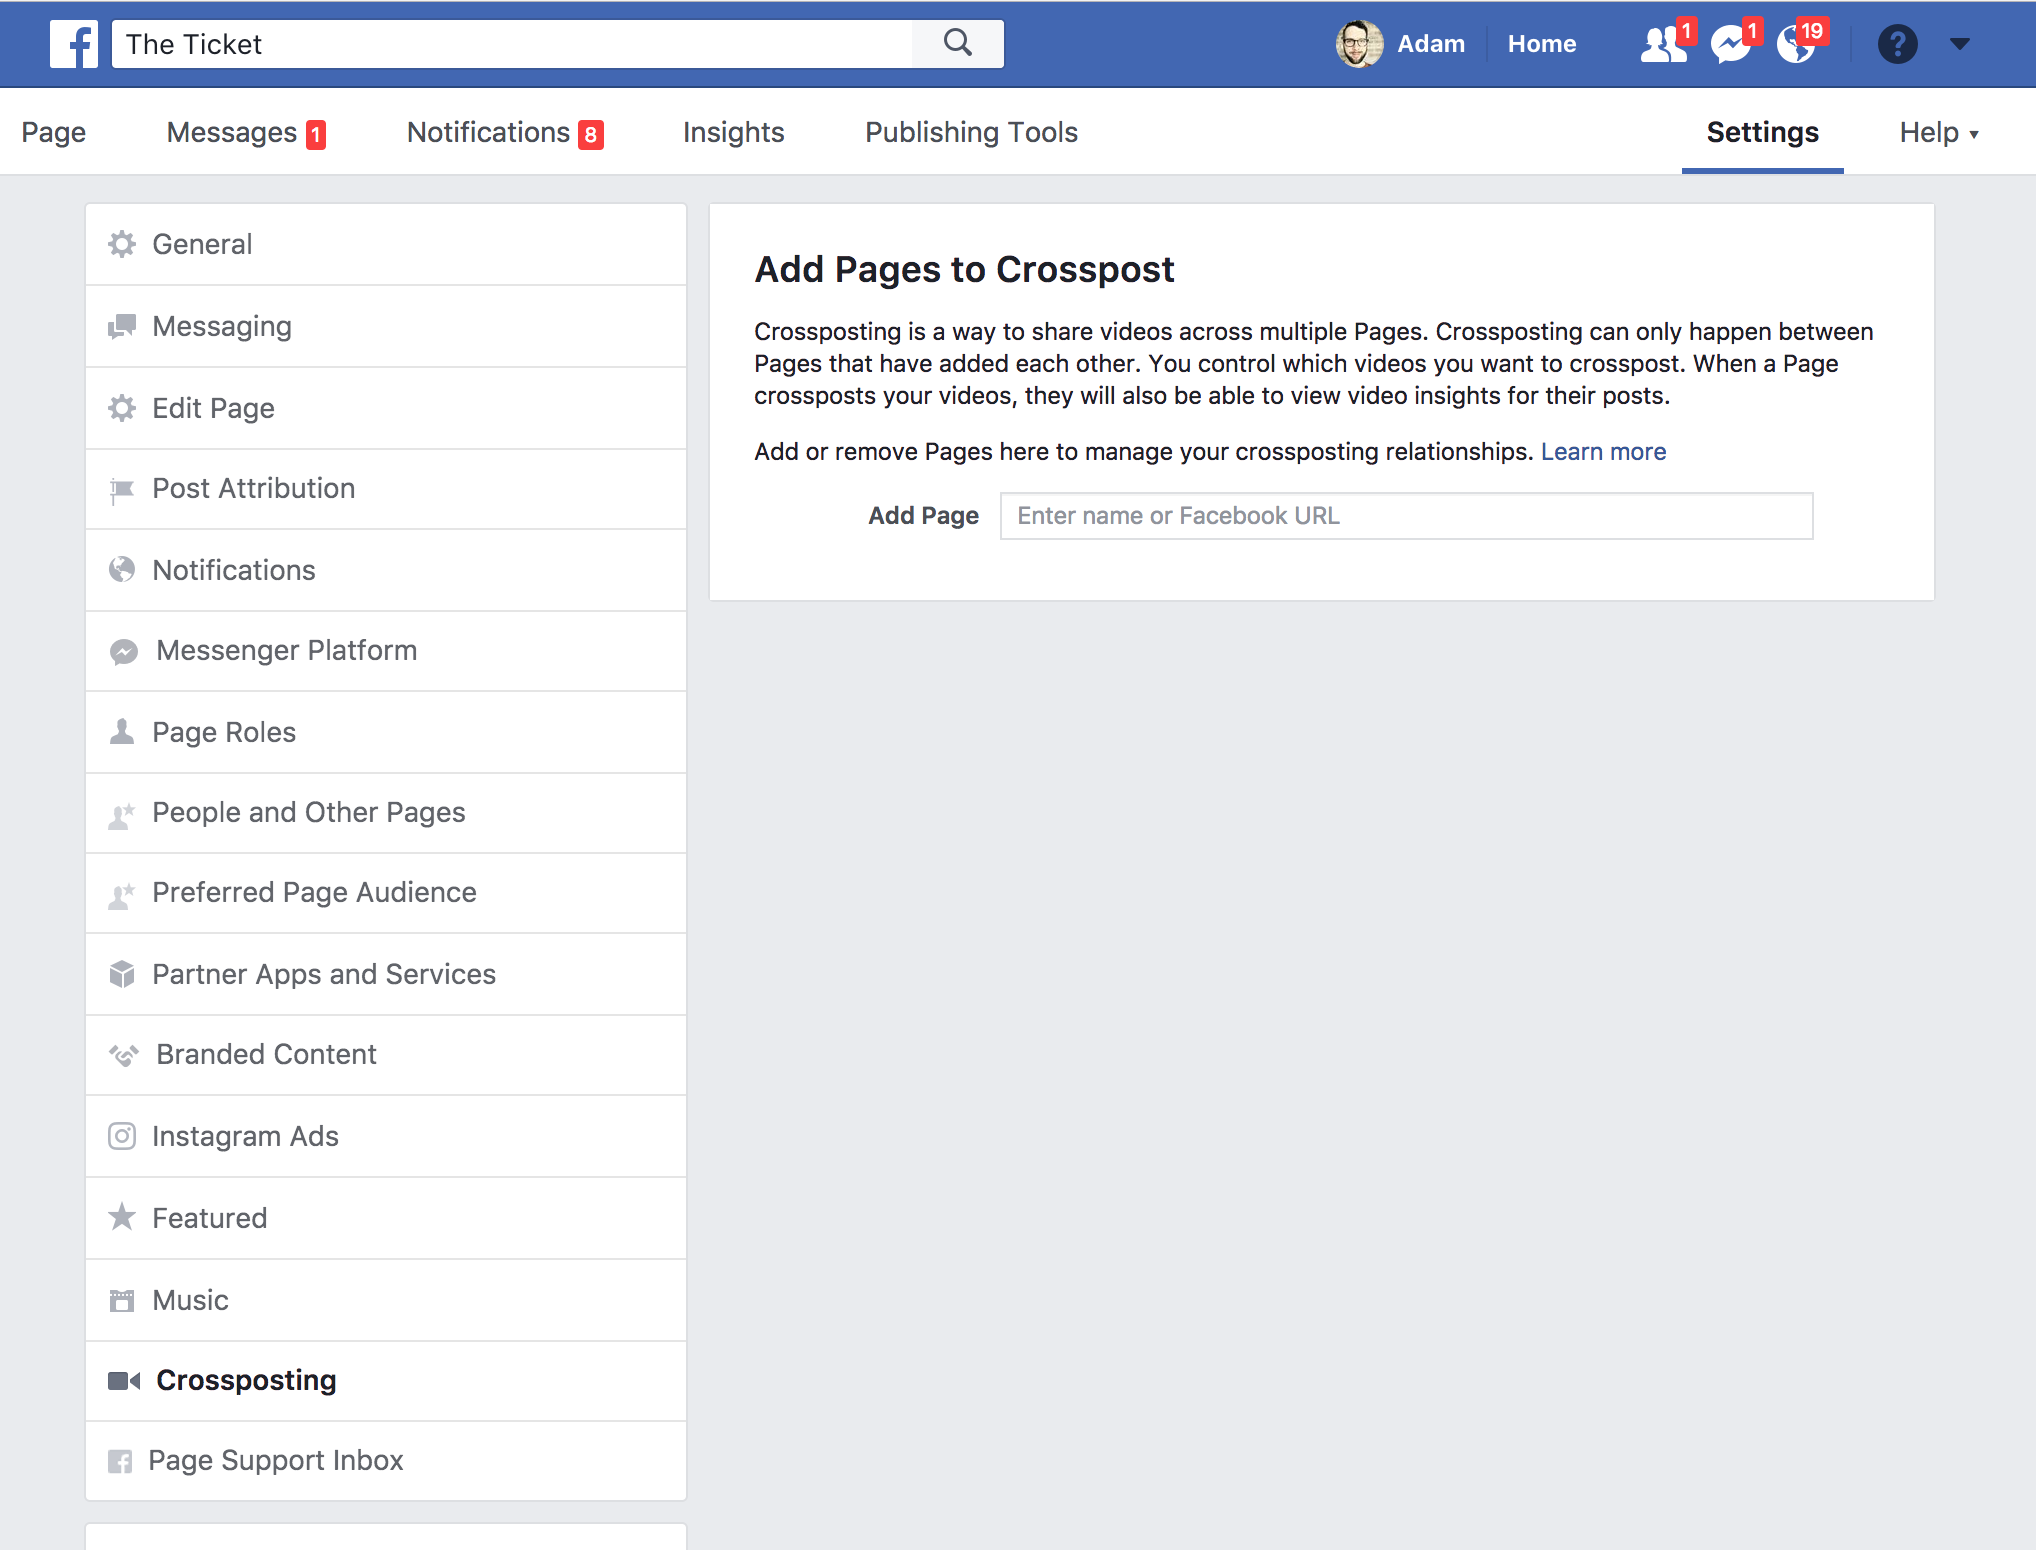 Screenshot of the crossposting settings page from Facebook